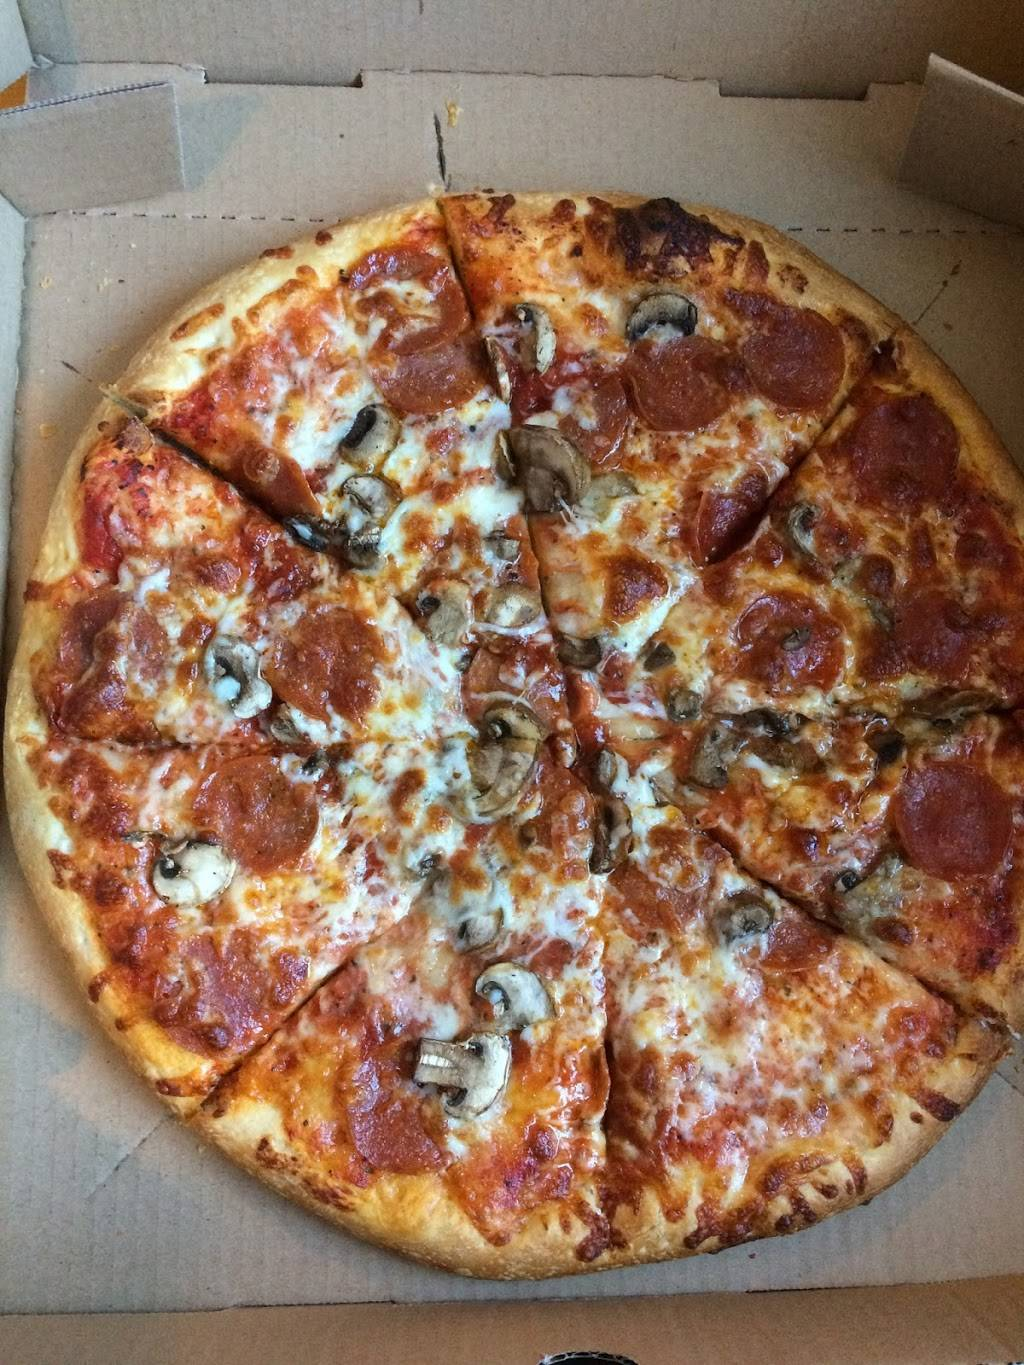 Als Pizza House | restaurant | 2902 Greenhouse Rd, Houston, TX 77084, USA | 7135955555 OR +1 713-595-5555